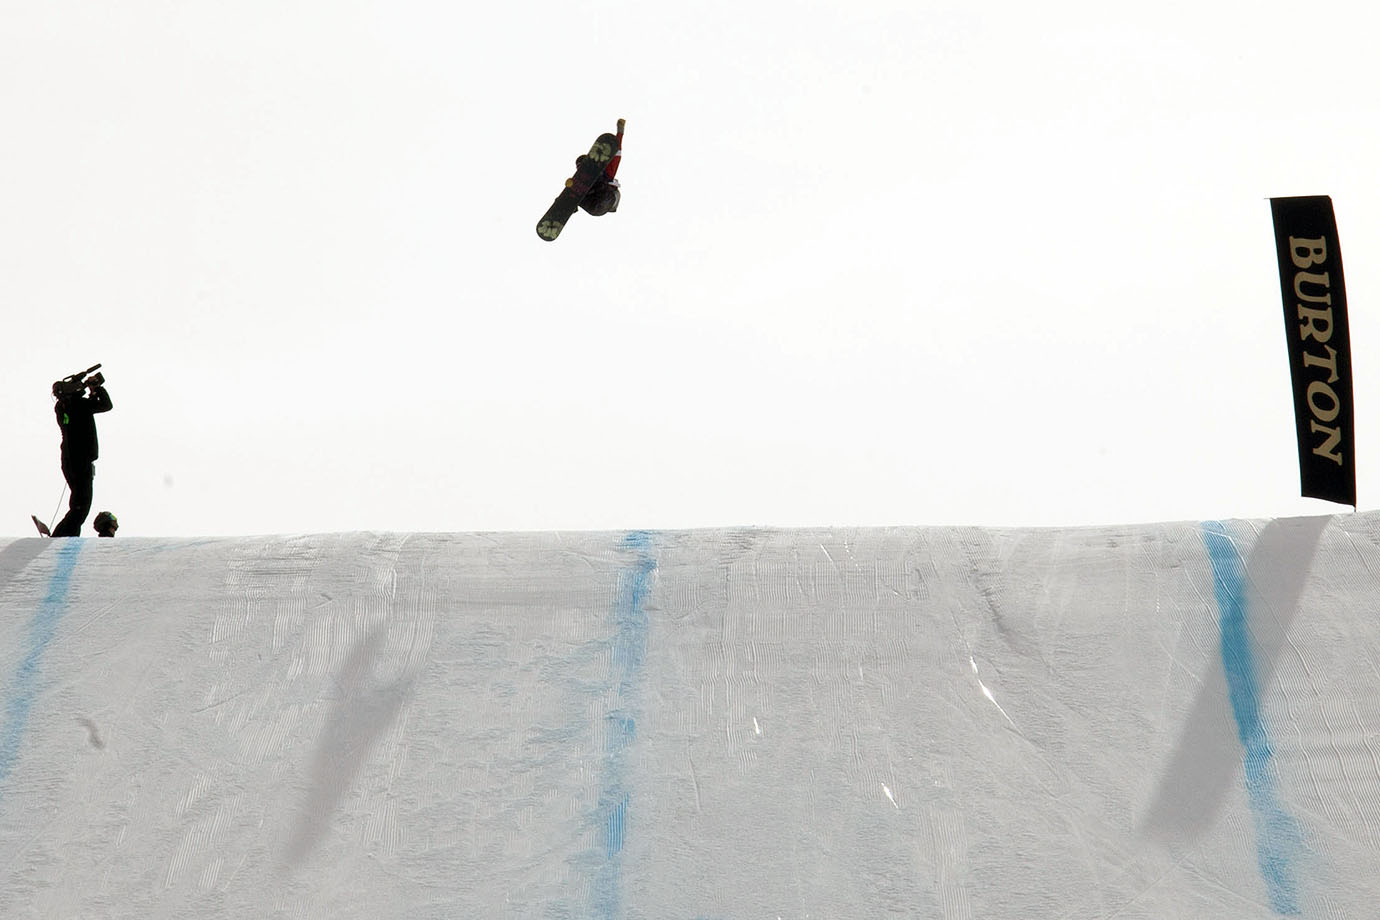 Women's second place winner Karly Shorr rises above the final jump of the Slopestyle course on the run that put her in second position.